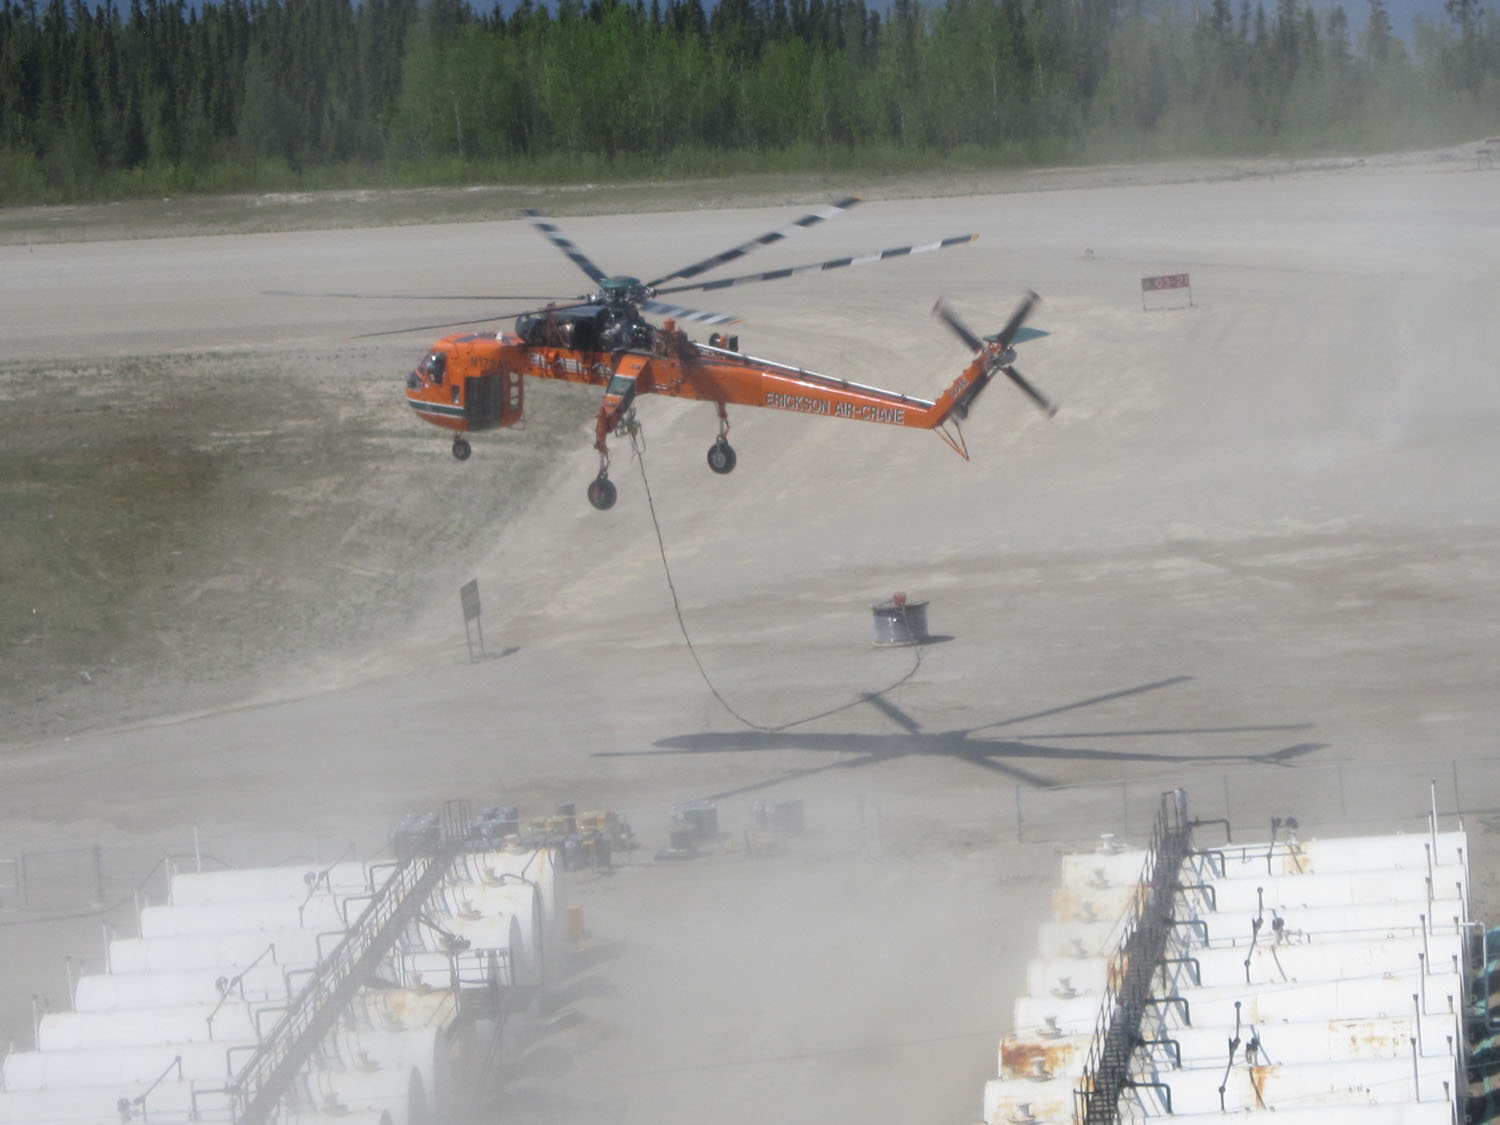 remote-access-projects-big-heli-025.jpg